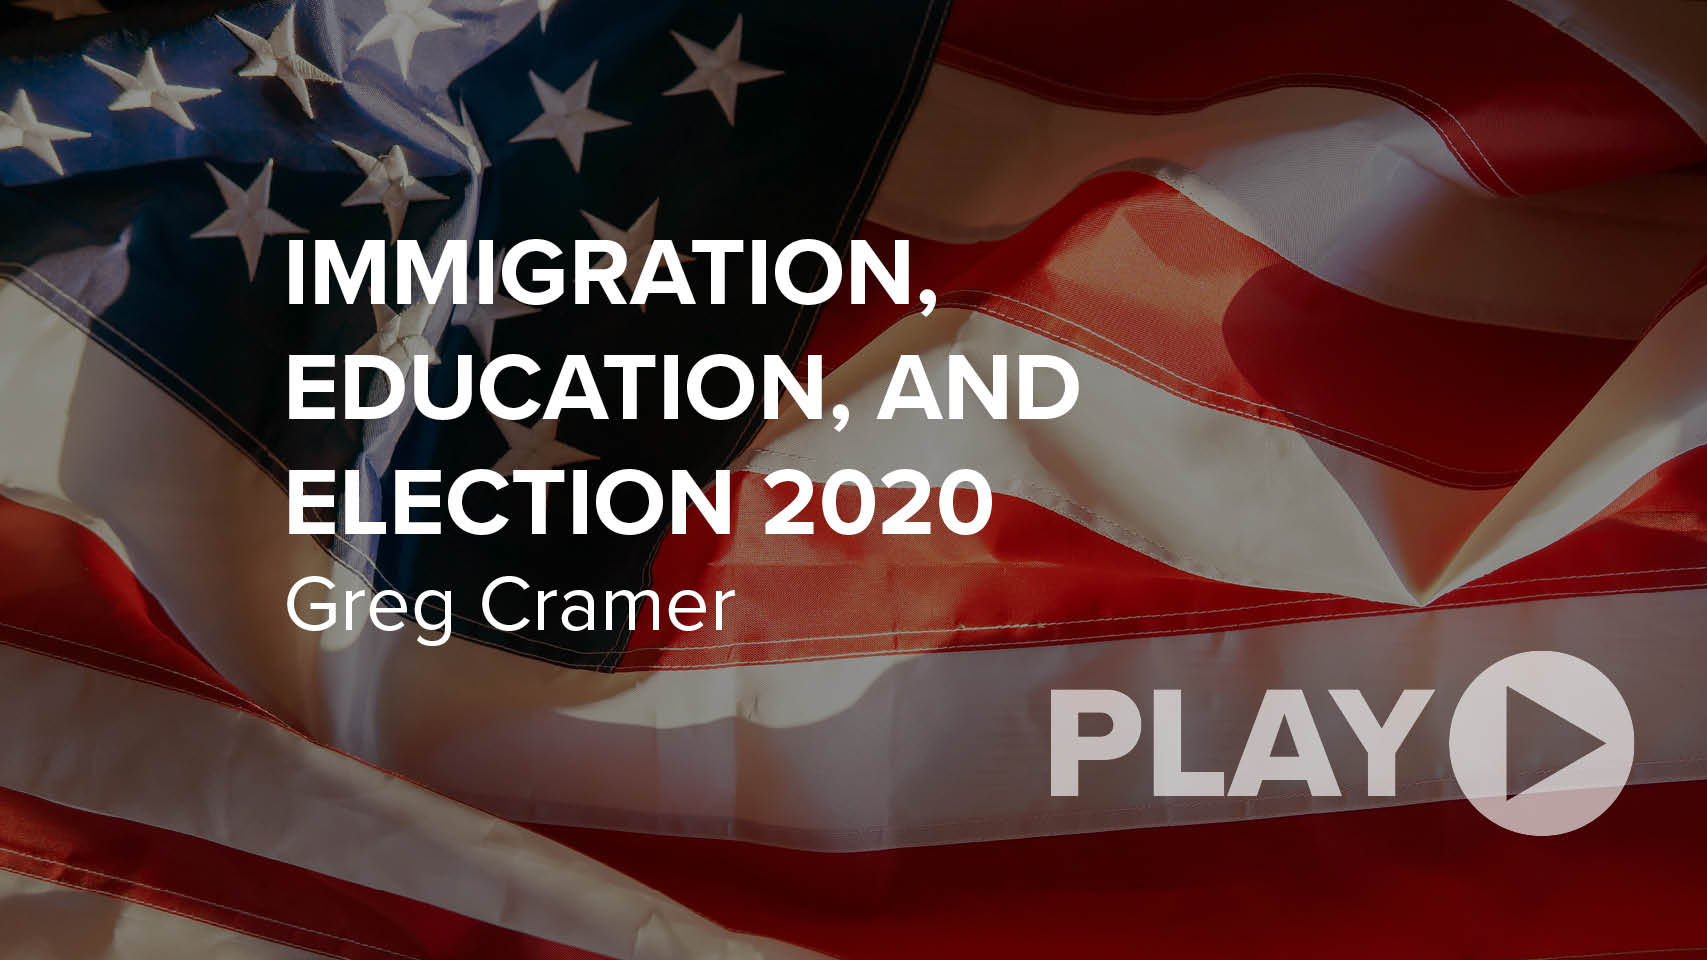 Immigration, Education, and Election 2020